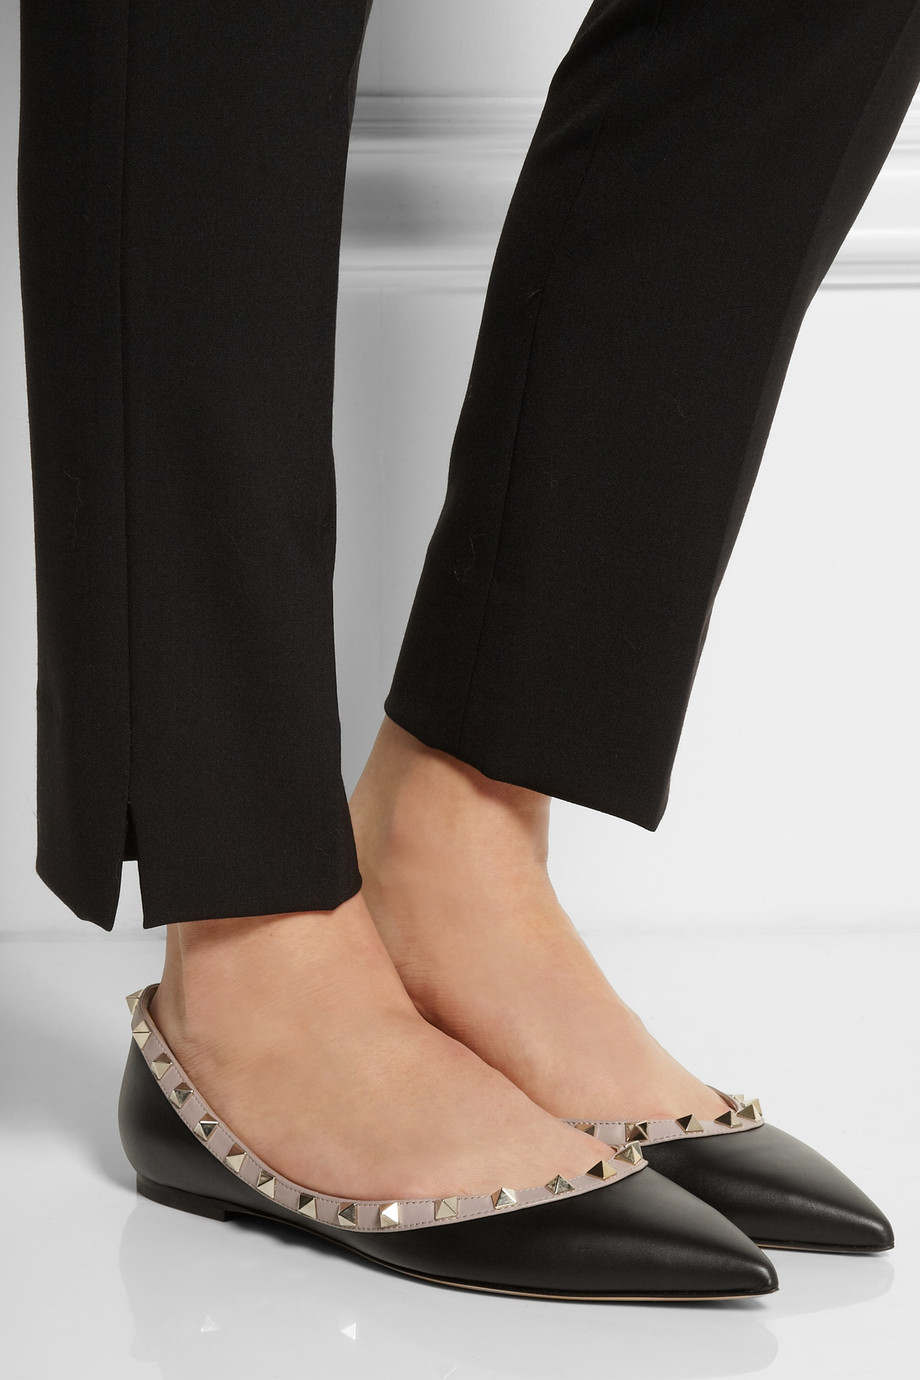 Valentino ROCKSTUD LEATHER FLATS B7gQN